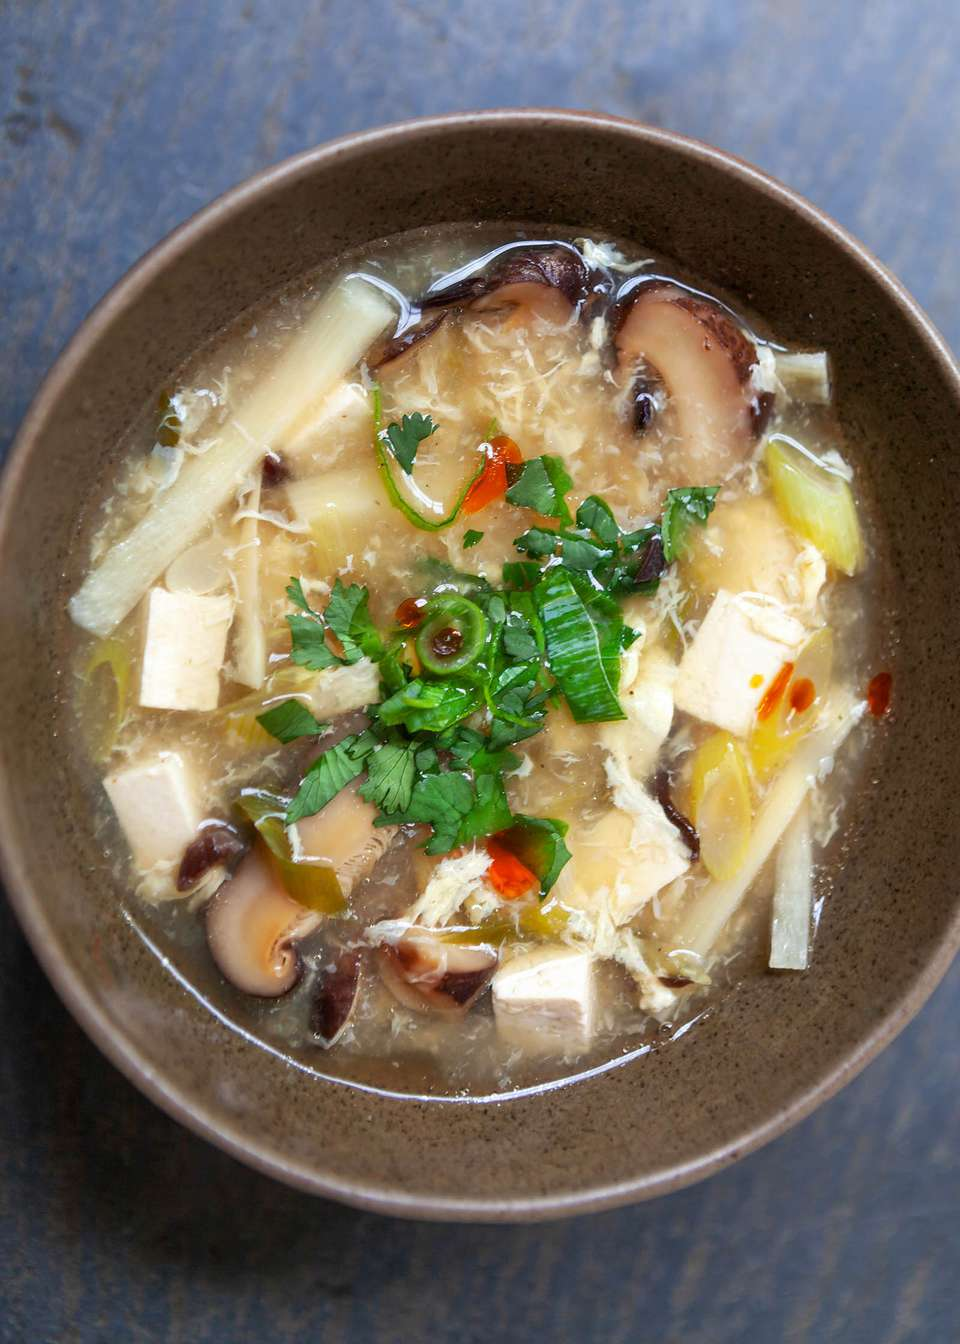 Hot and sour soup in a bowl.